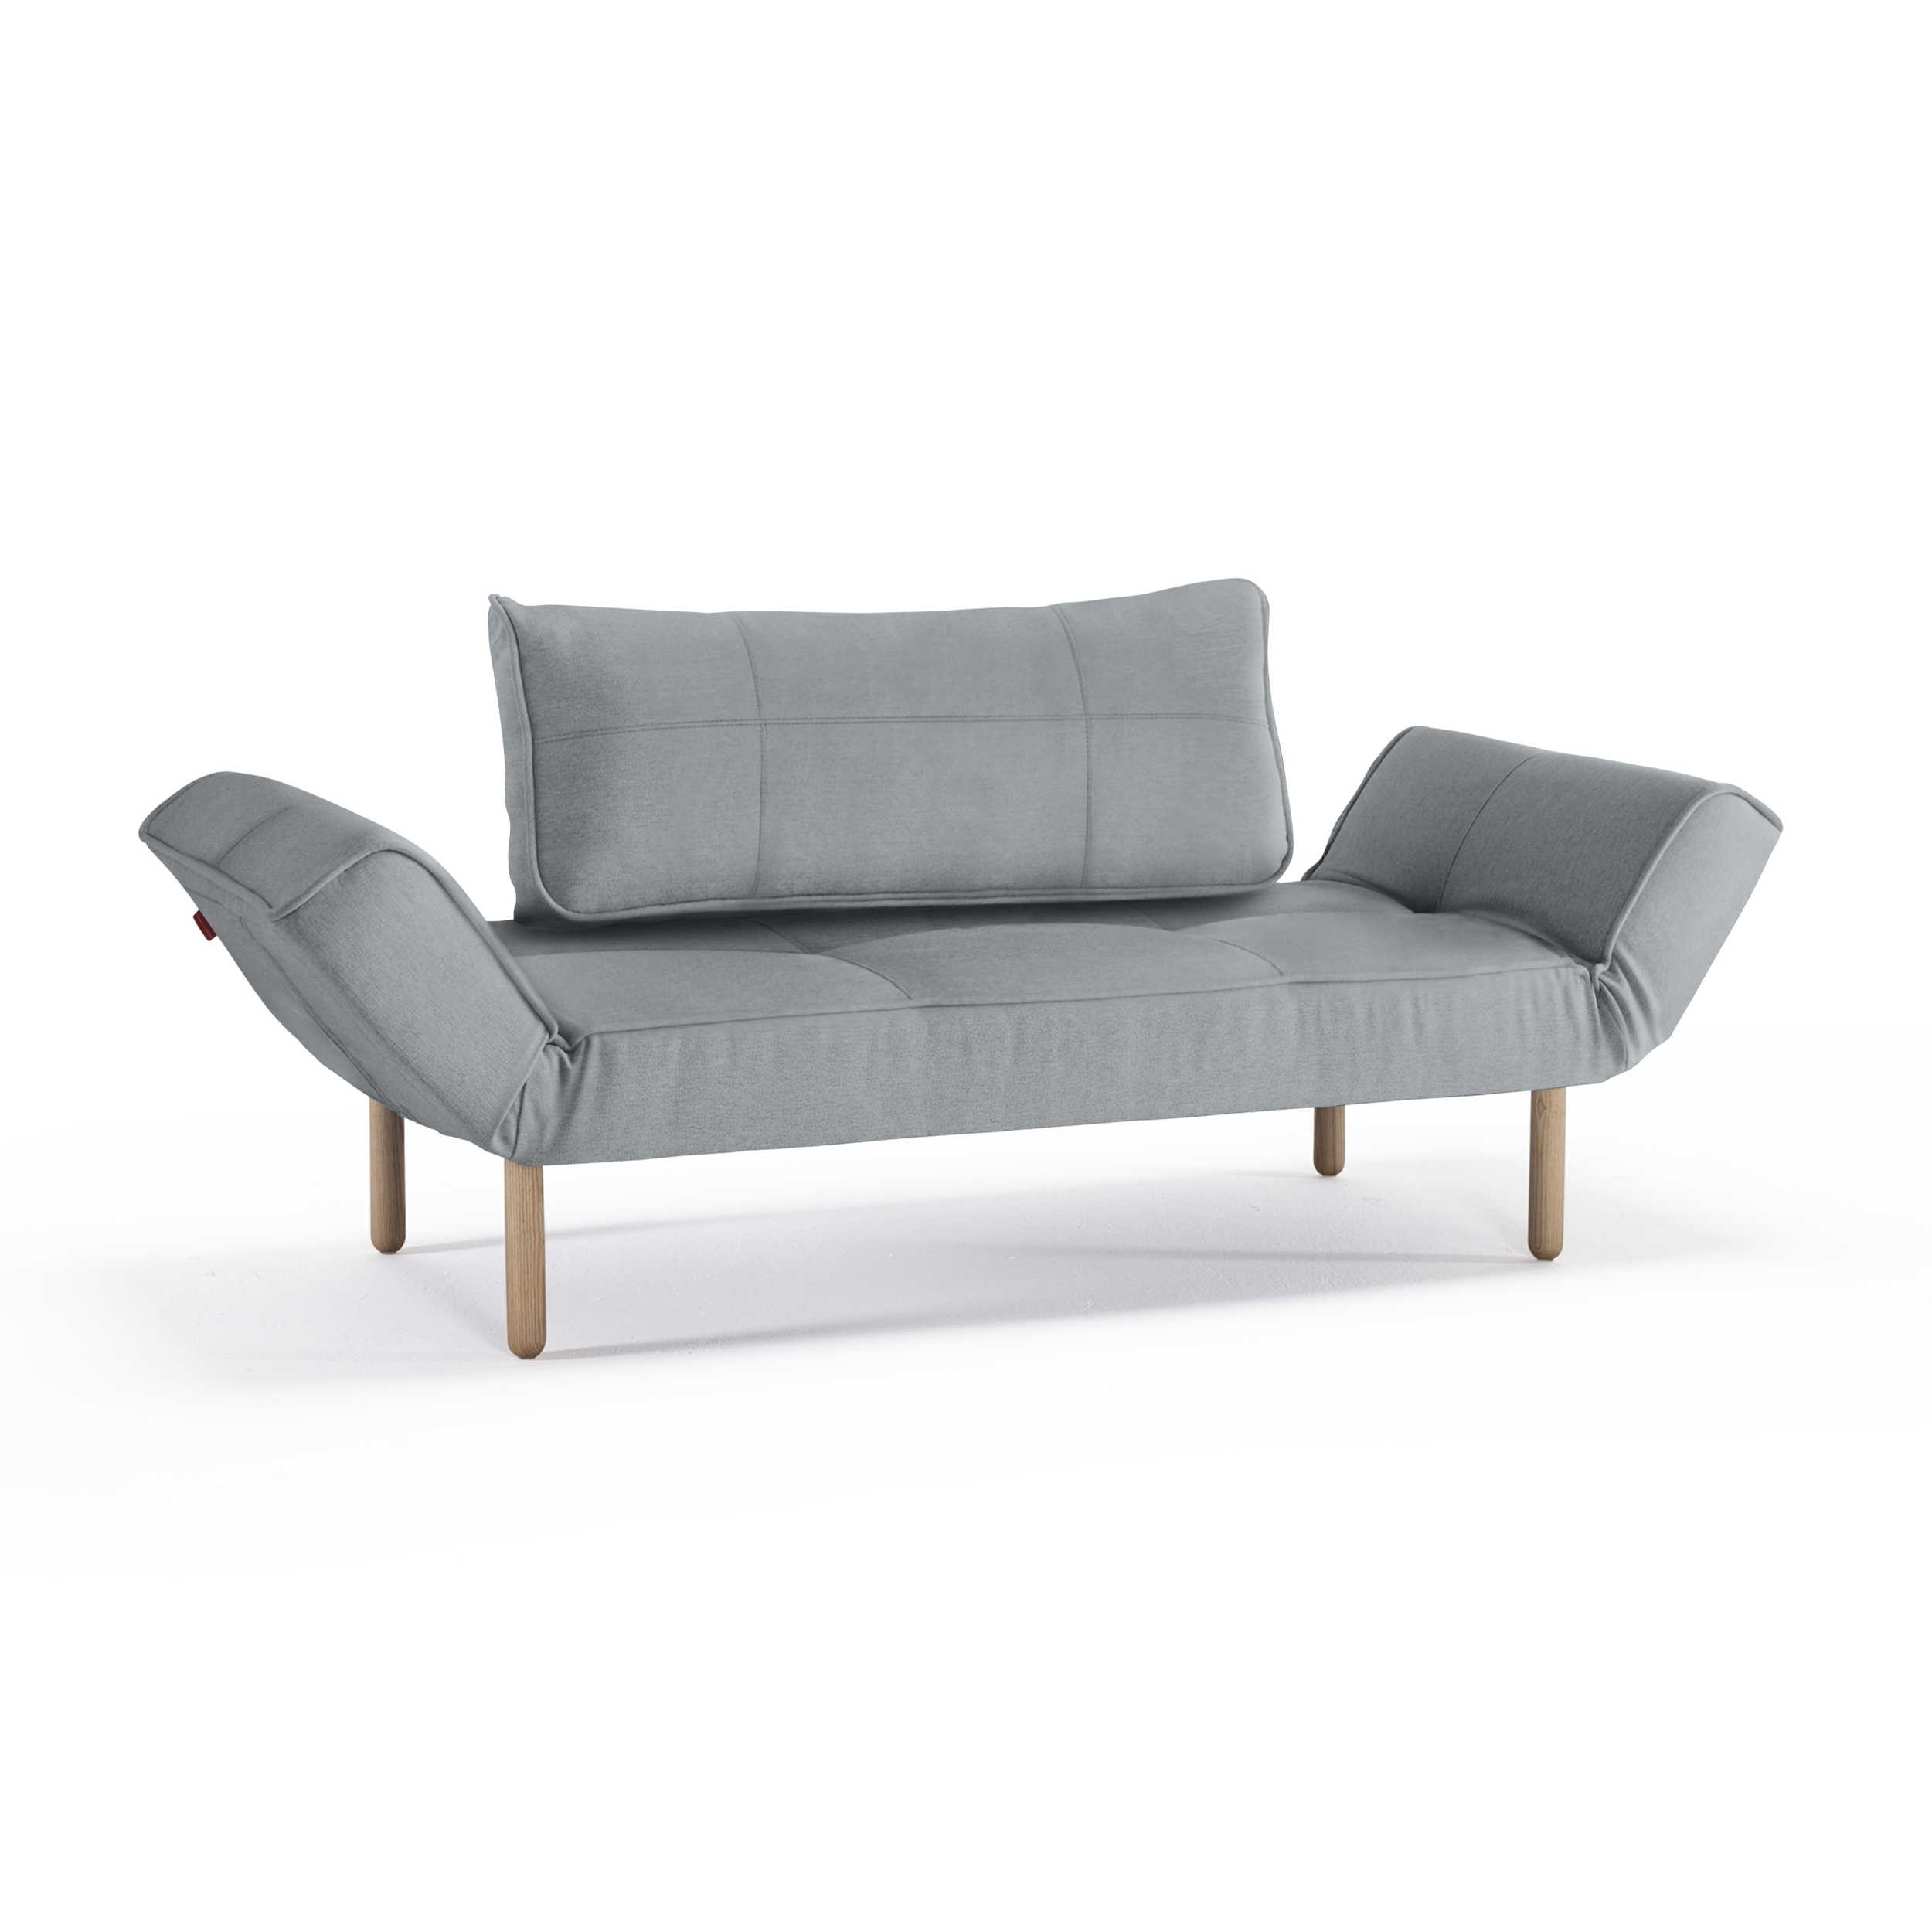 Innovation Schlafsofas Innovation Schlafsofa Ghia Sitting